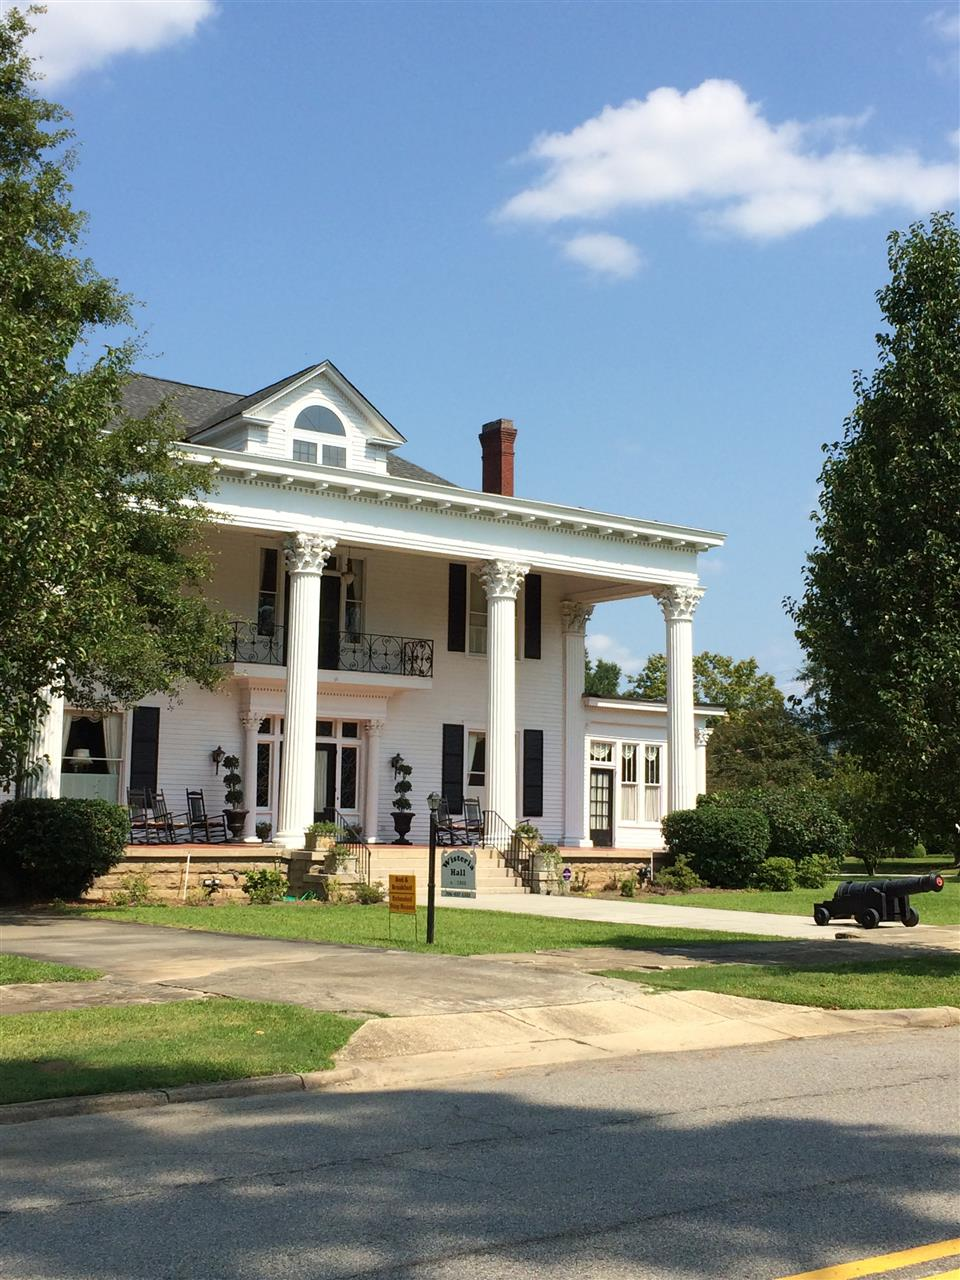 Wisteria Hall, located in Waynesboro, GA is one of the town's oldest homes.  Today, it is used a historic site for public events.